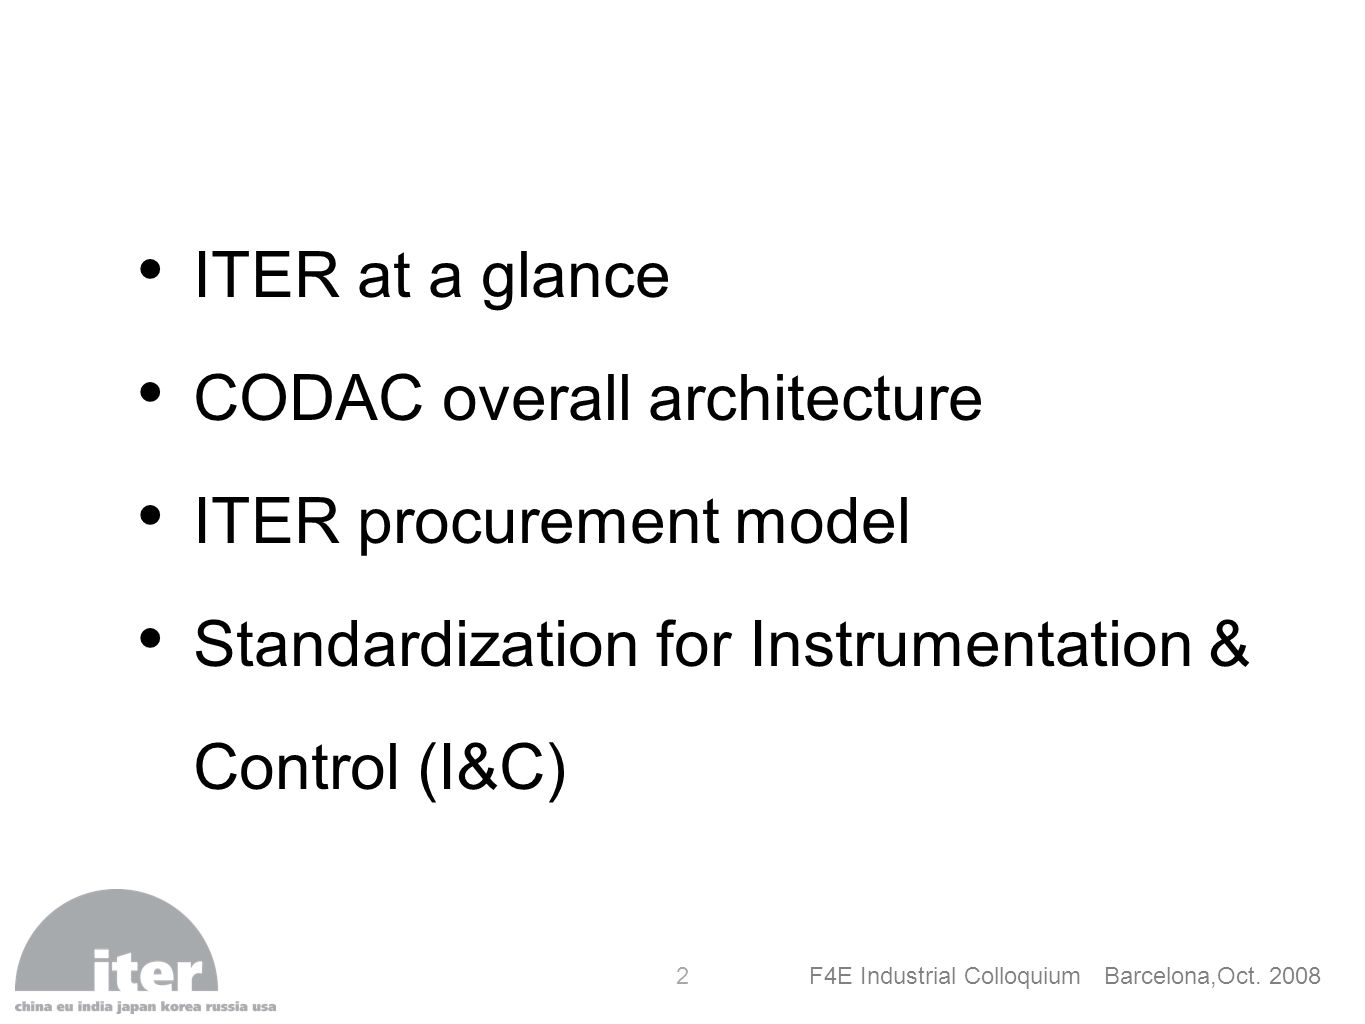 F4E Industrial Colloquium Barcelona,Oct. 2008 2 ITER at a glance CODAC overall architecture ITER procurement model Standardization for Instrumentation